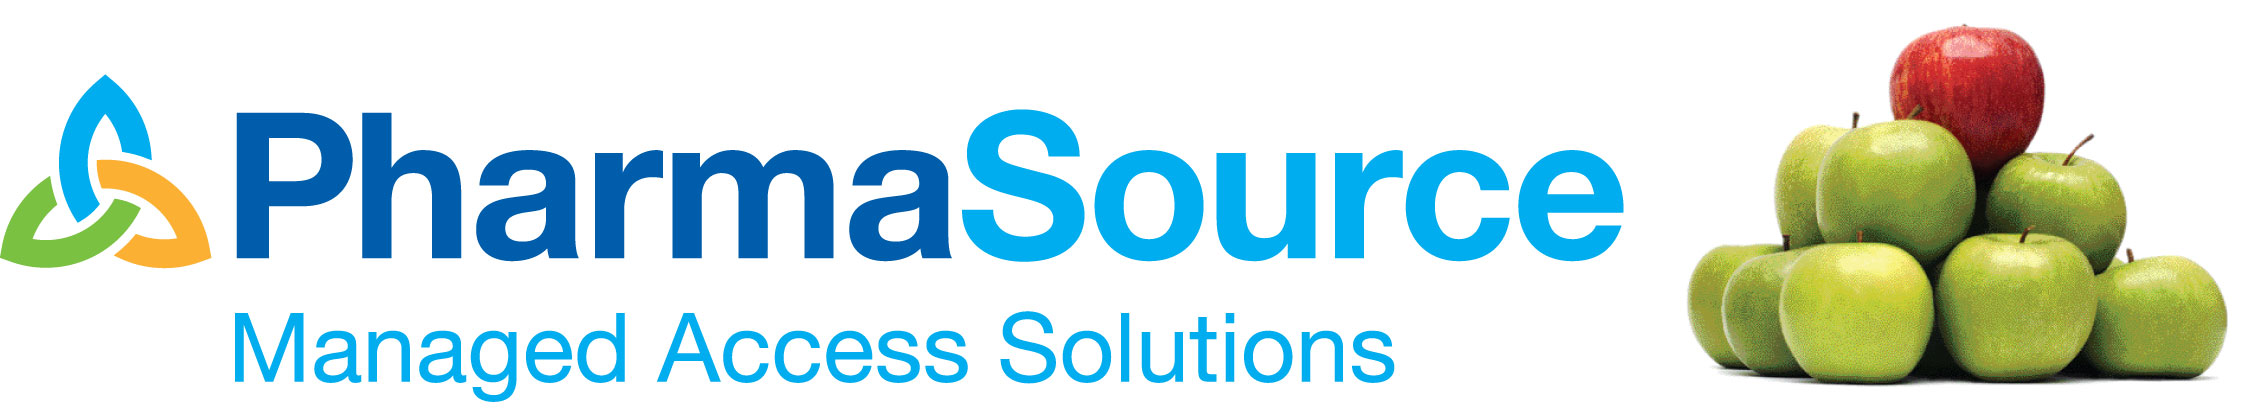 Pharmasource Logo